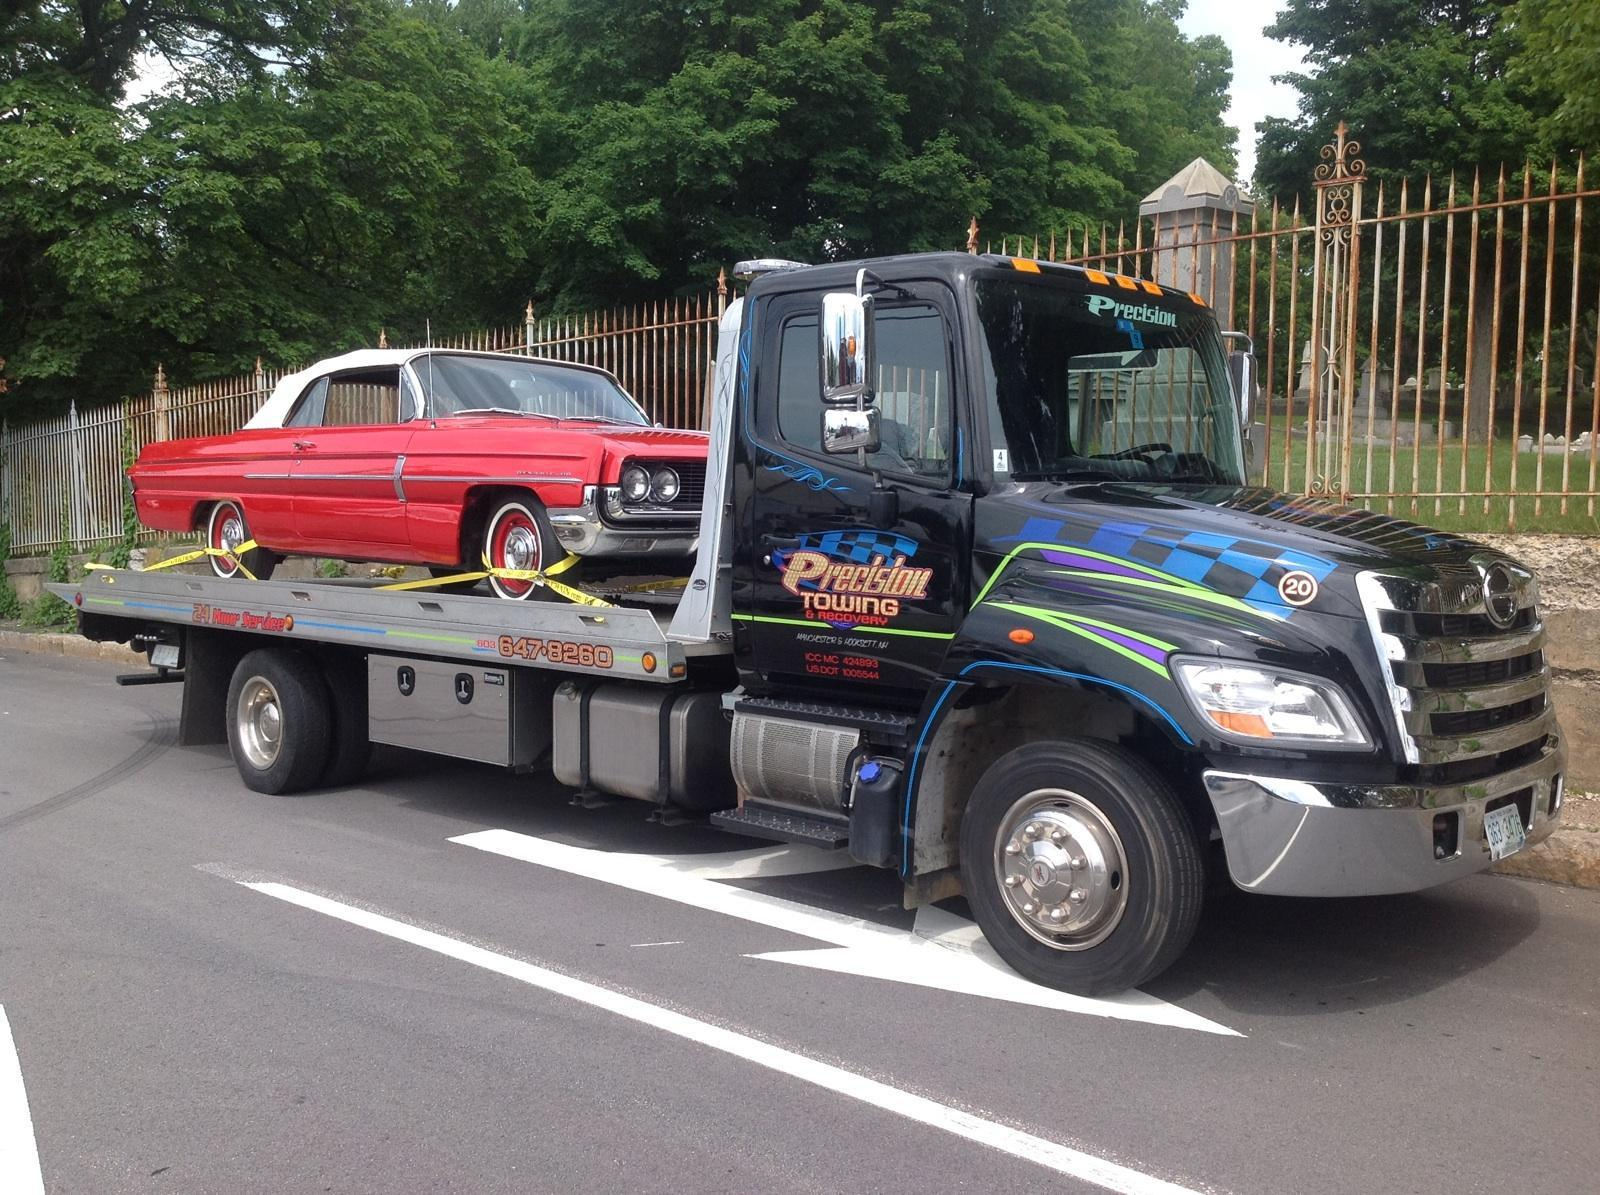 Wrecker Service Manchester, NH | Auto Lockouts & 24 Hour Roadside ...